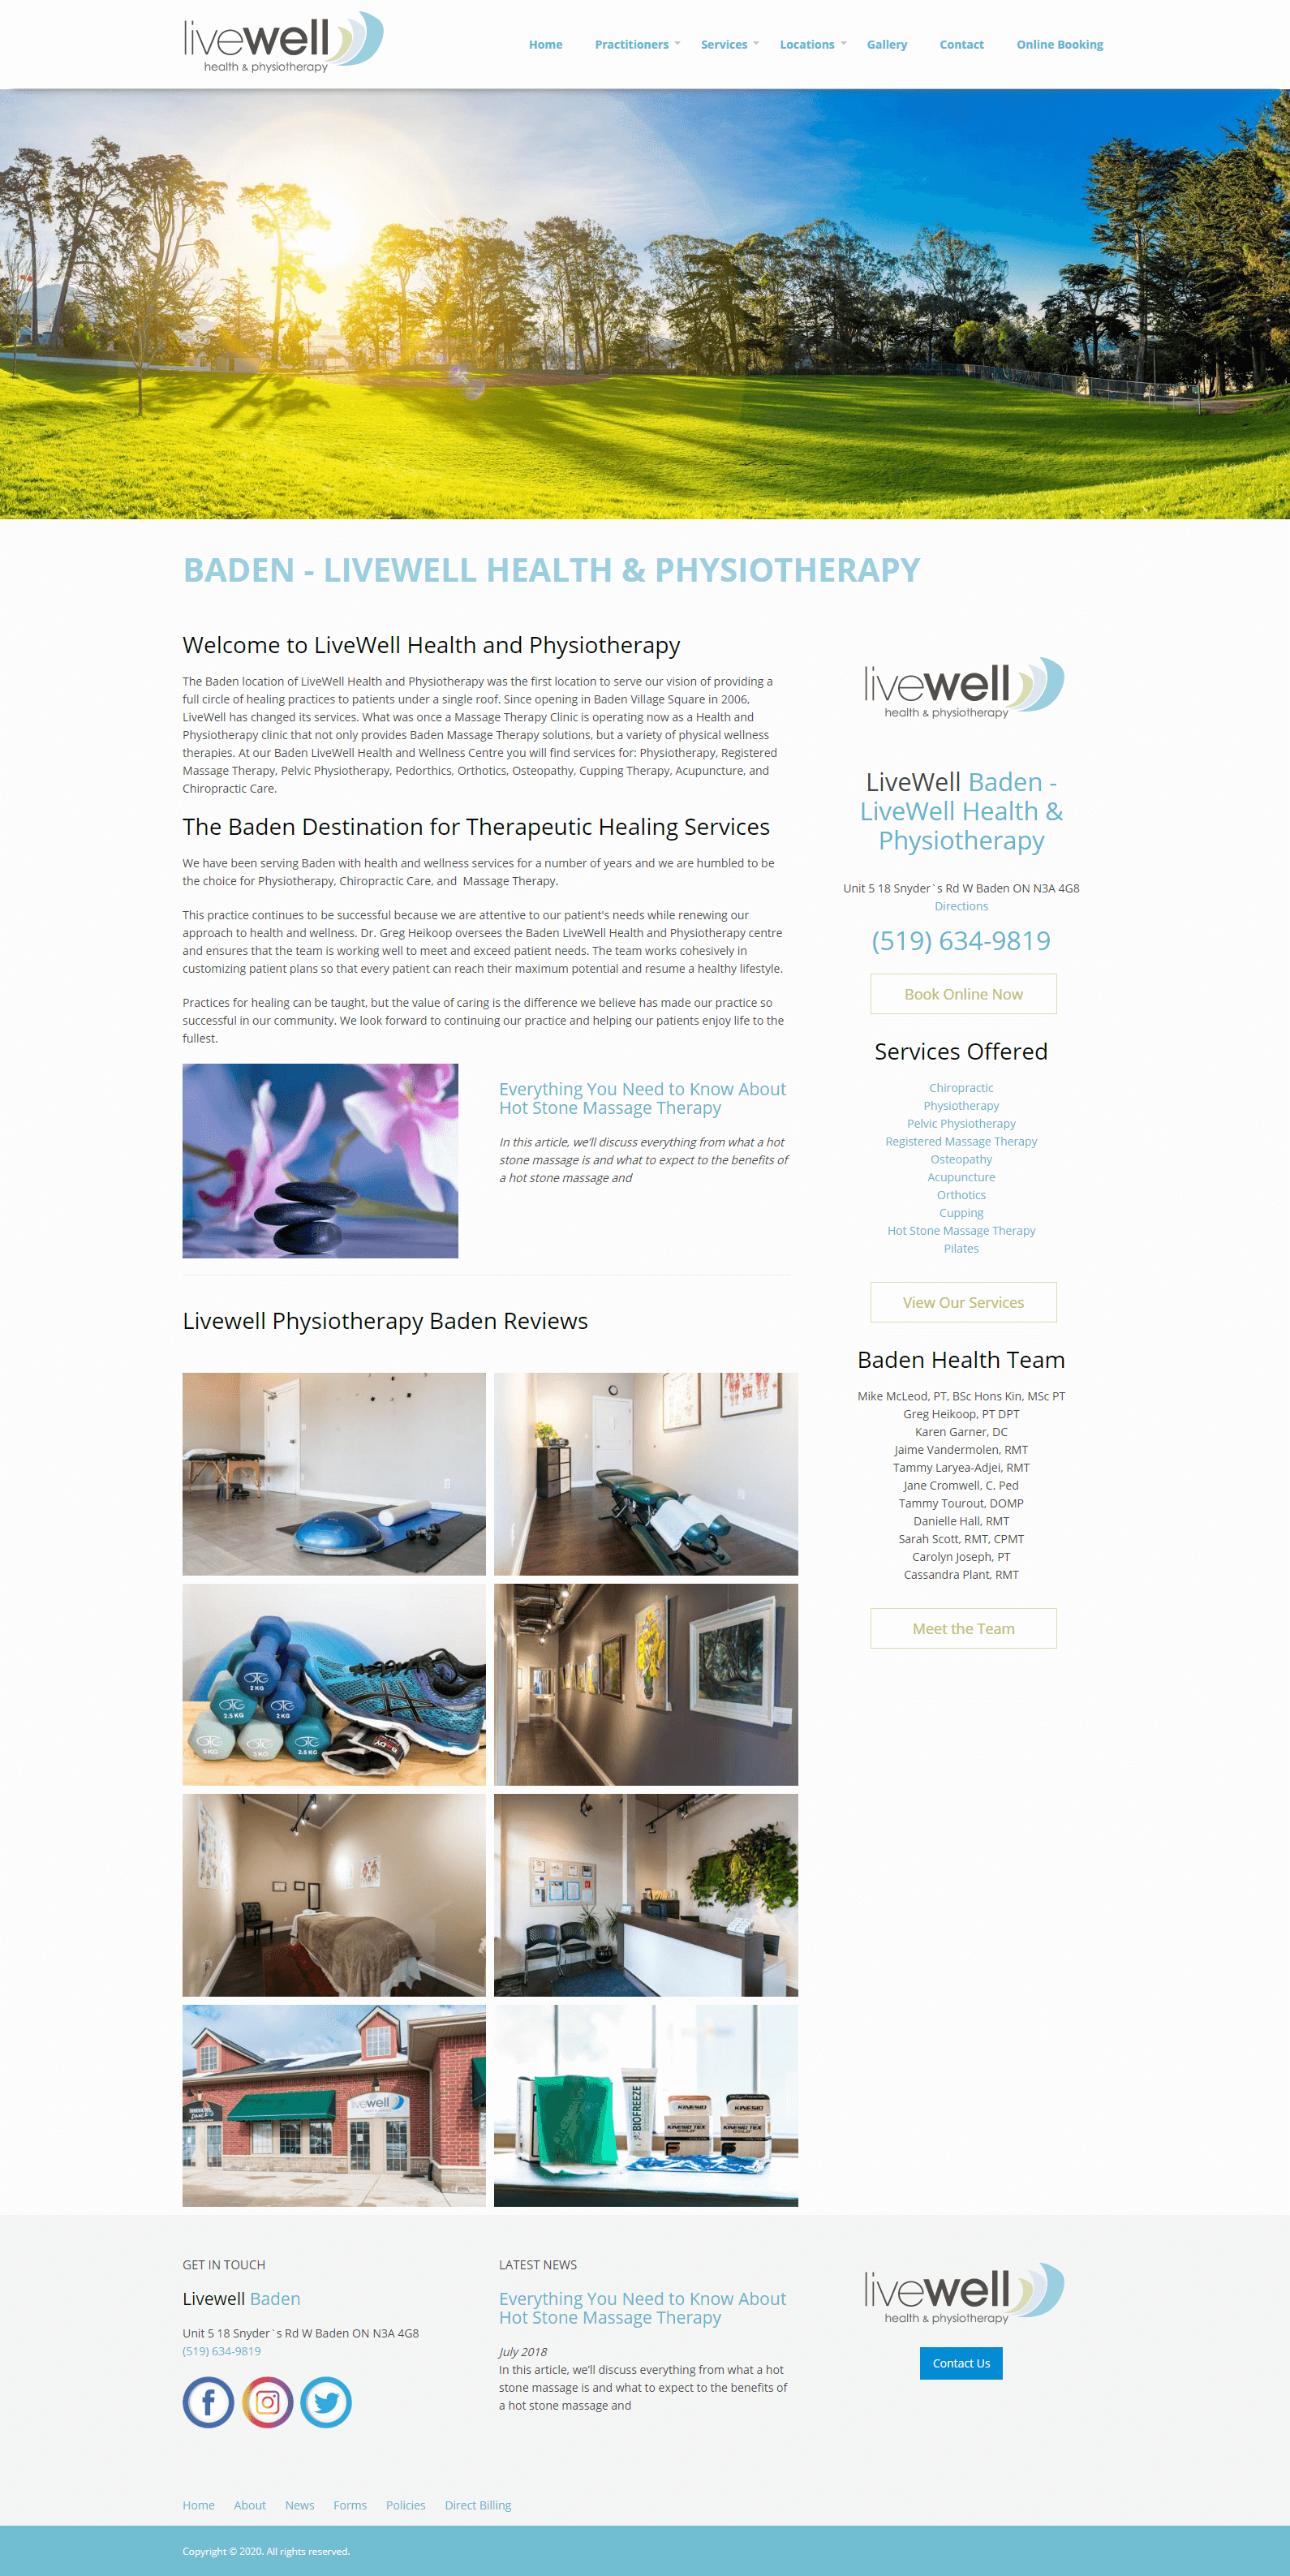 LIvewell Baden home page